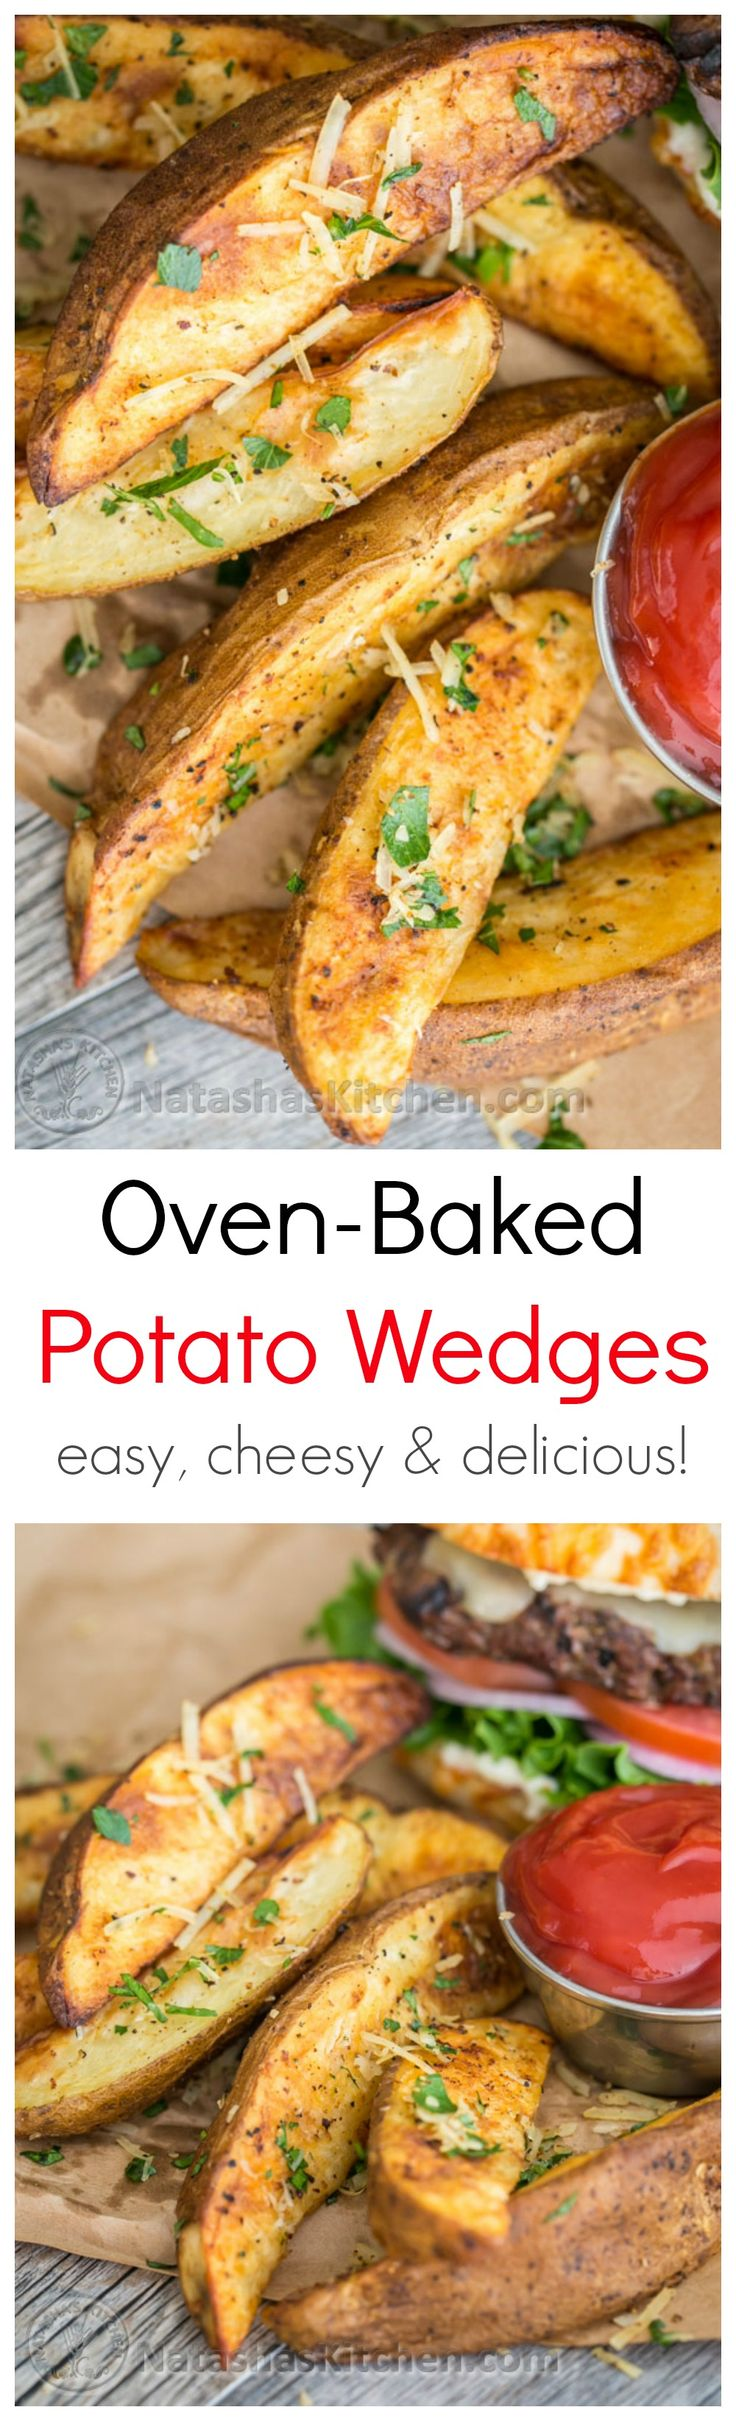 These oven baked potato wedges are crisp, easy and delicious every time. So good!! @natashaskitchen